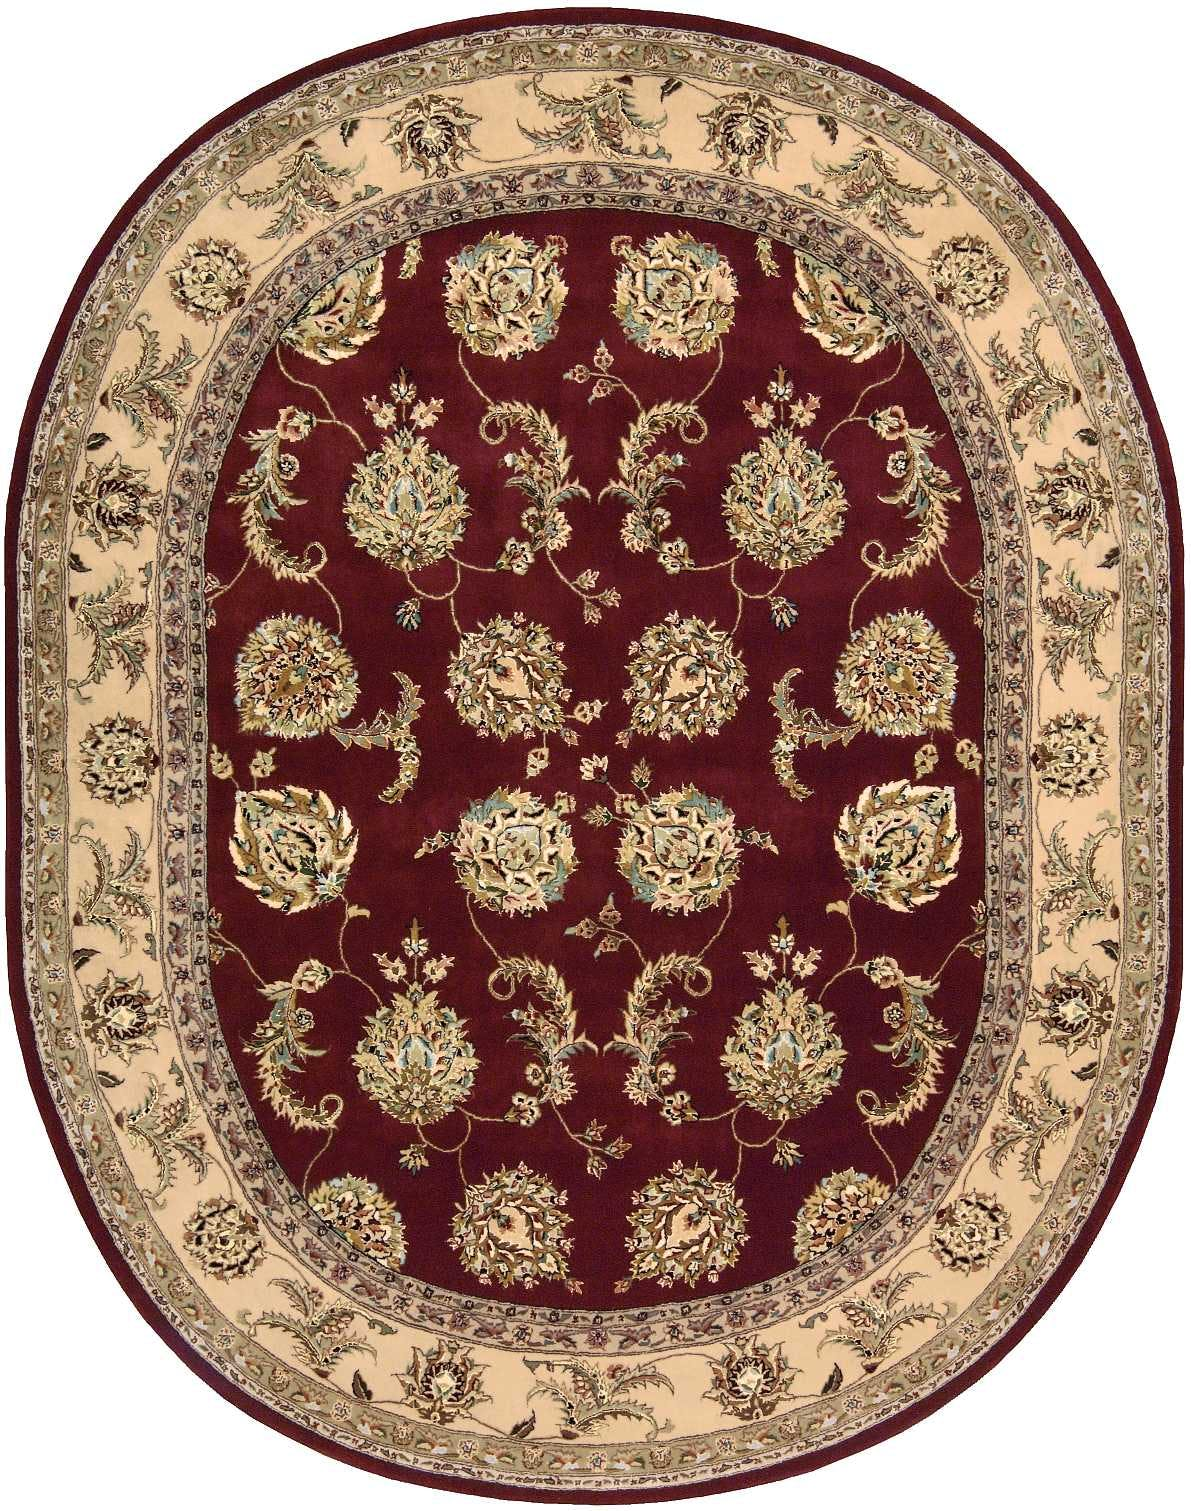 Image of: Nourison Floor Coverings 2000 2022 Lacquer 10 Oval Area Rug 099446863096 Aminis